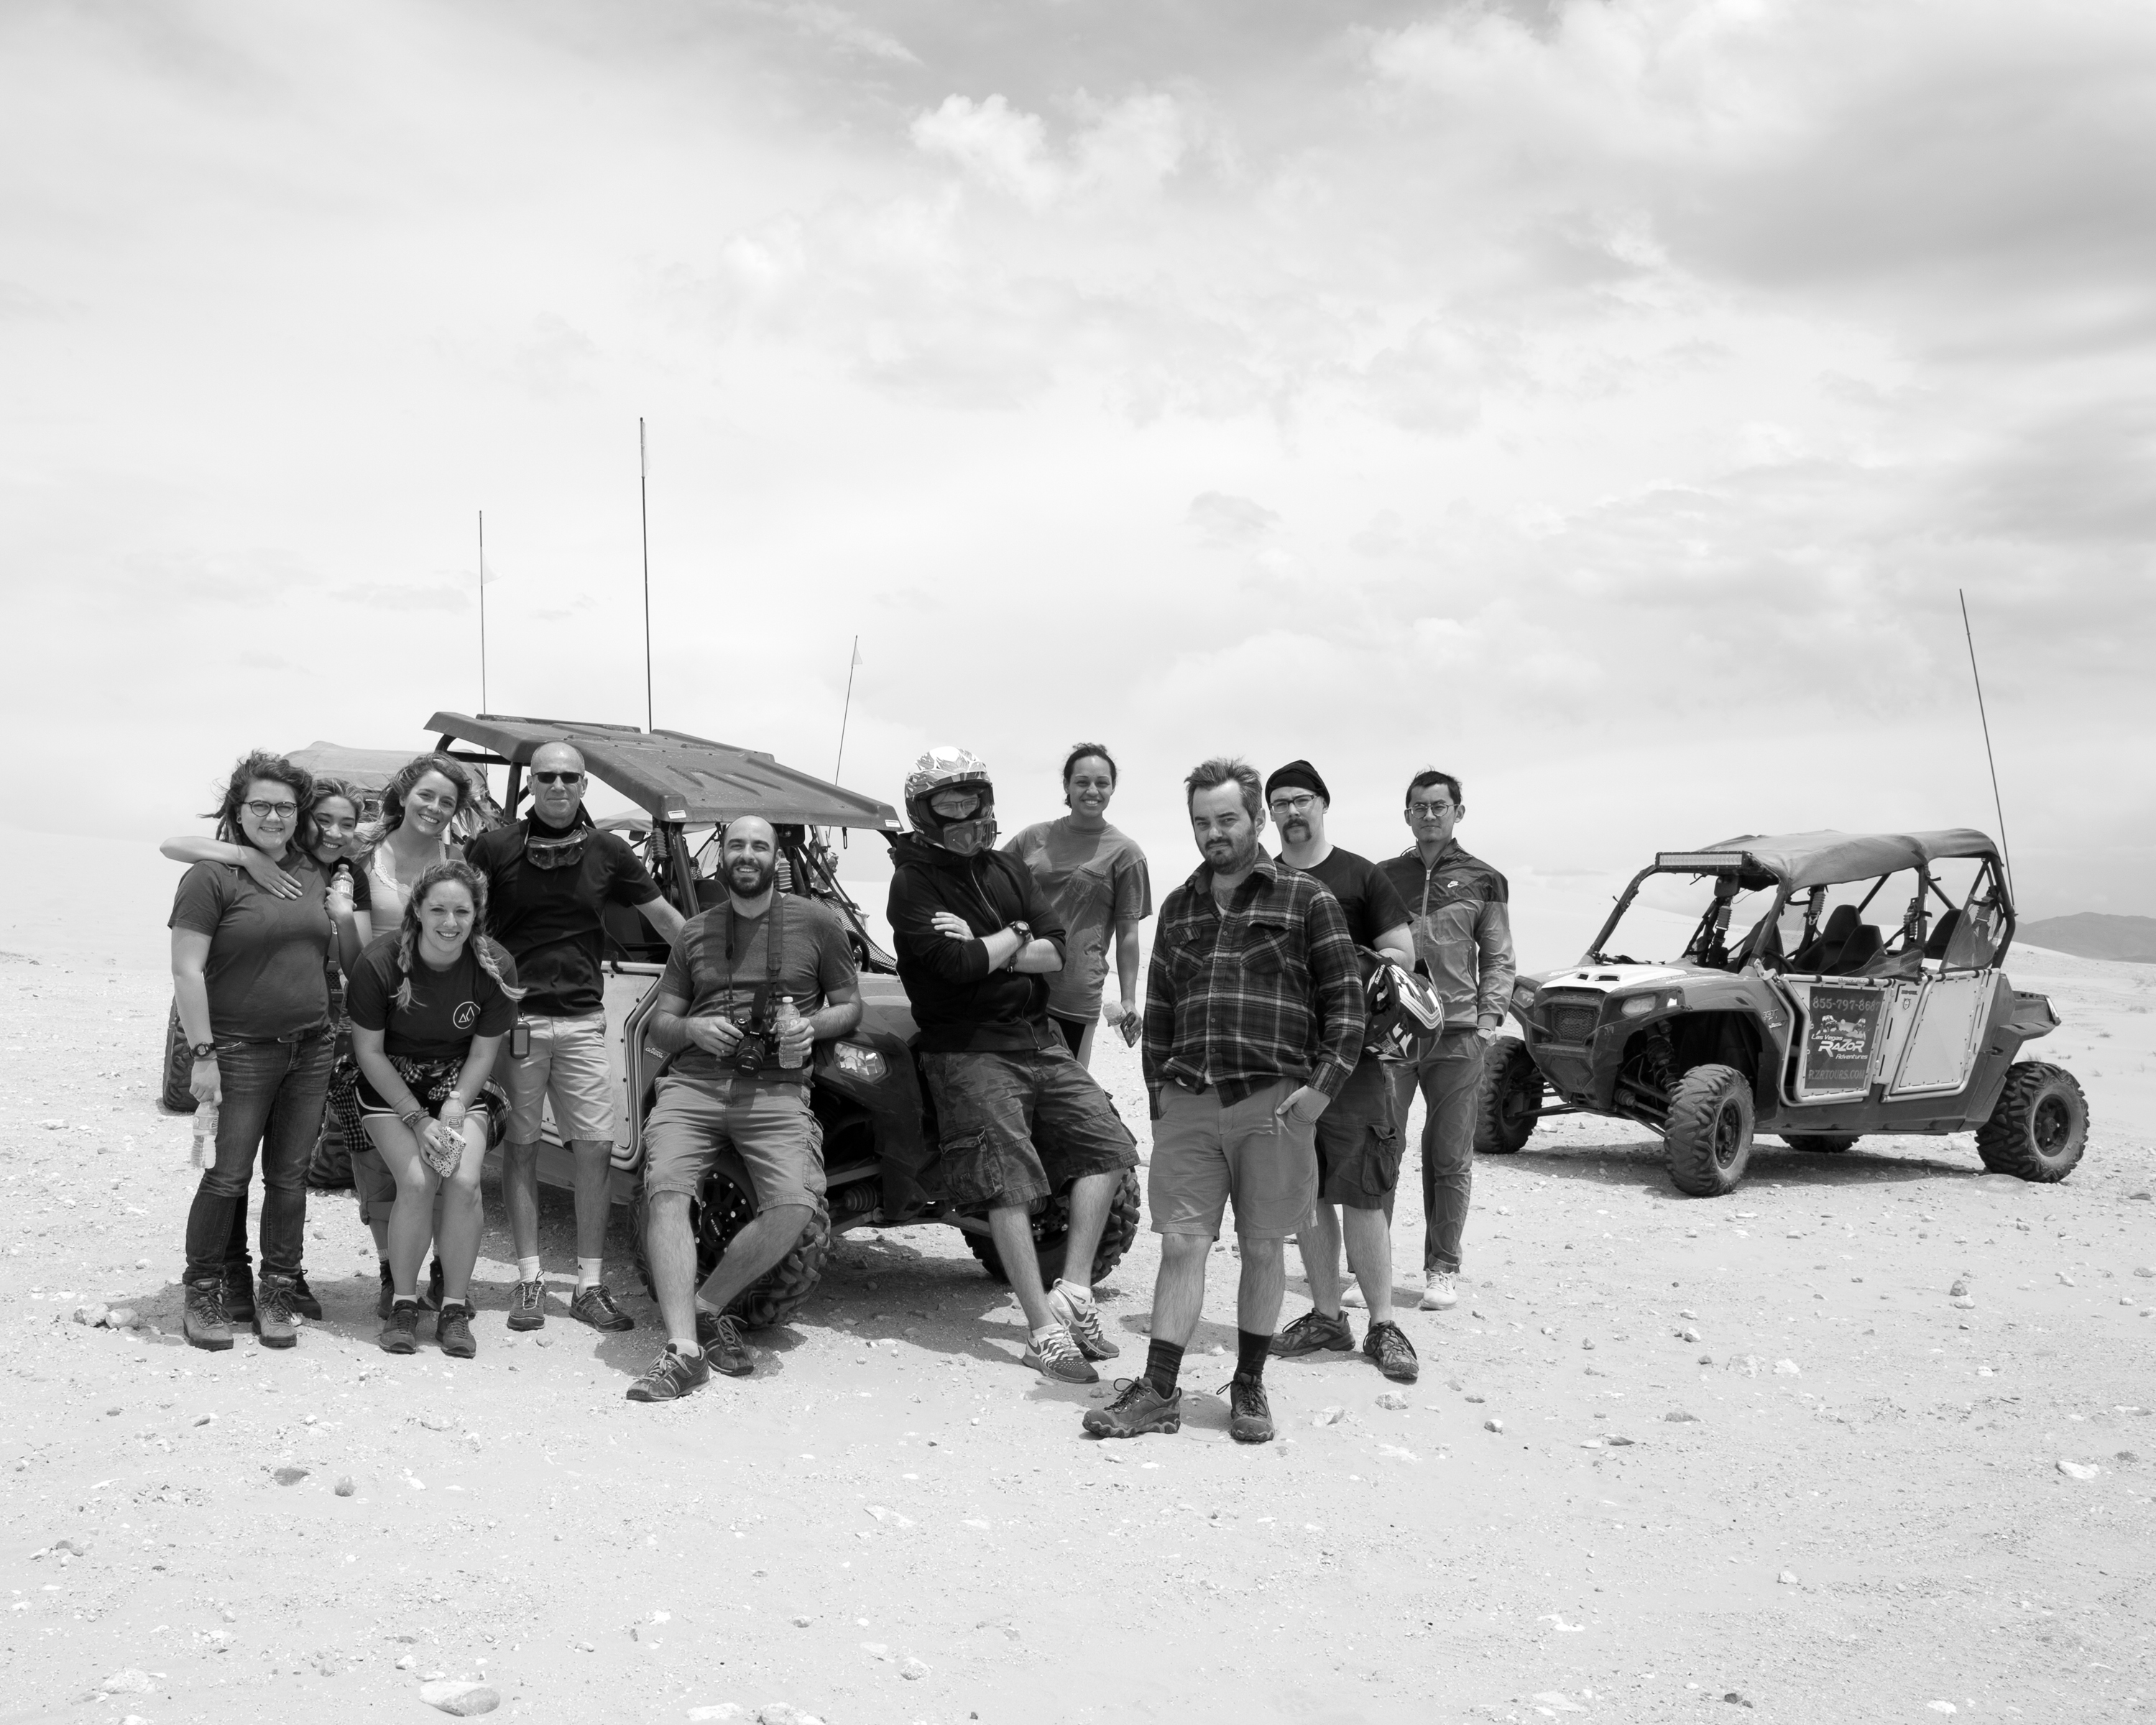 A black-and-white photo featuring a group of people leaning on a dune buggy in a sandy desert